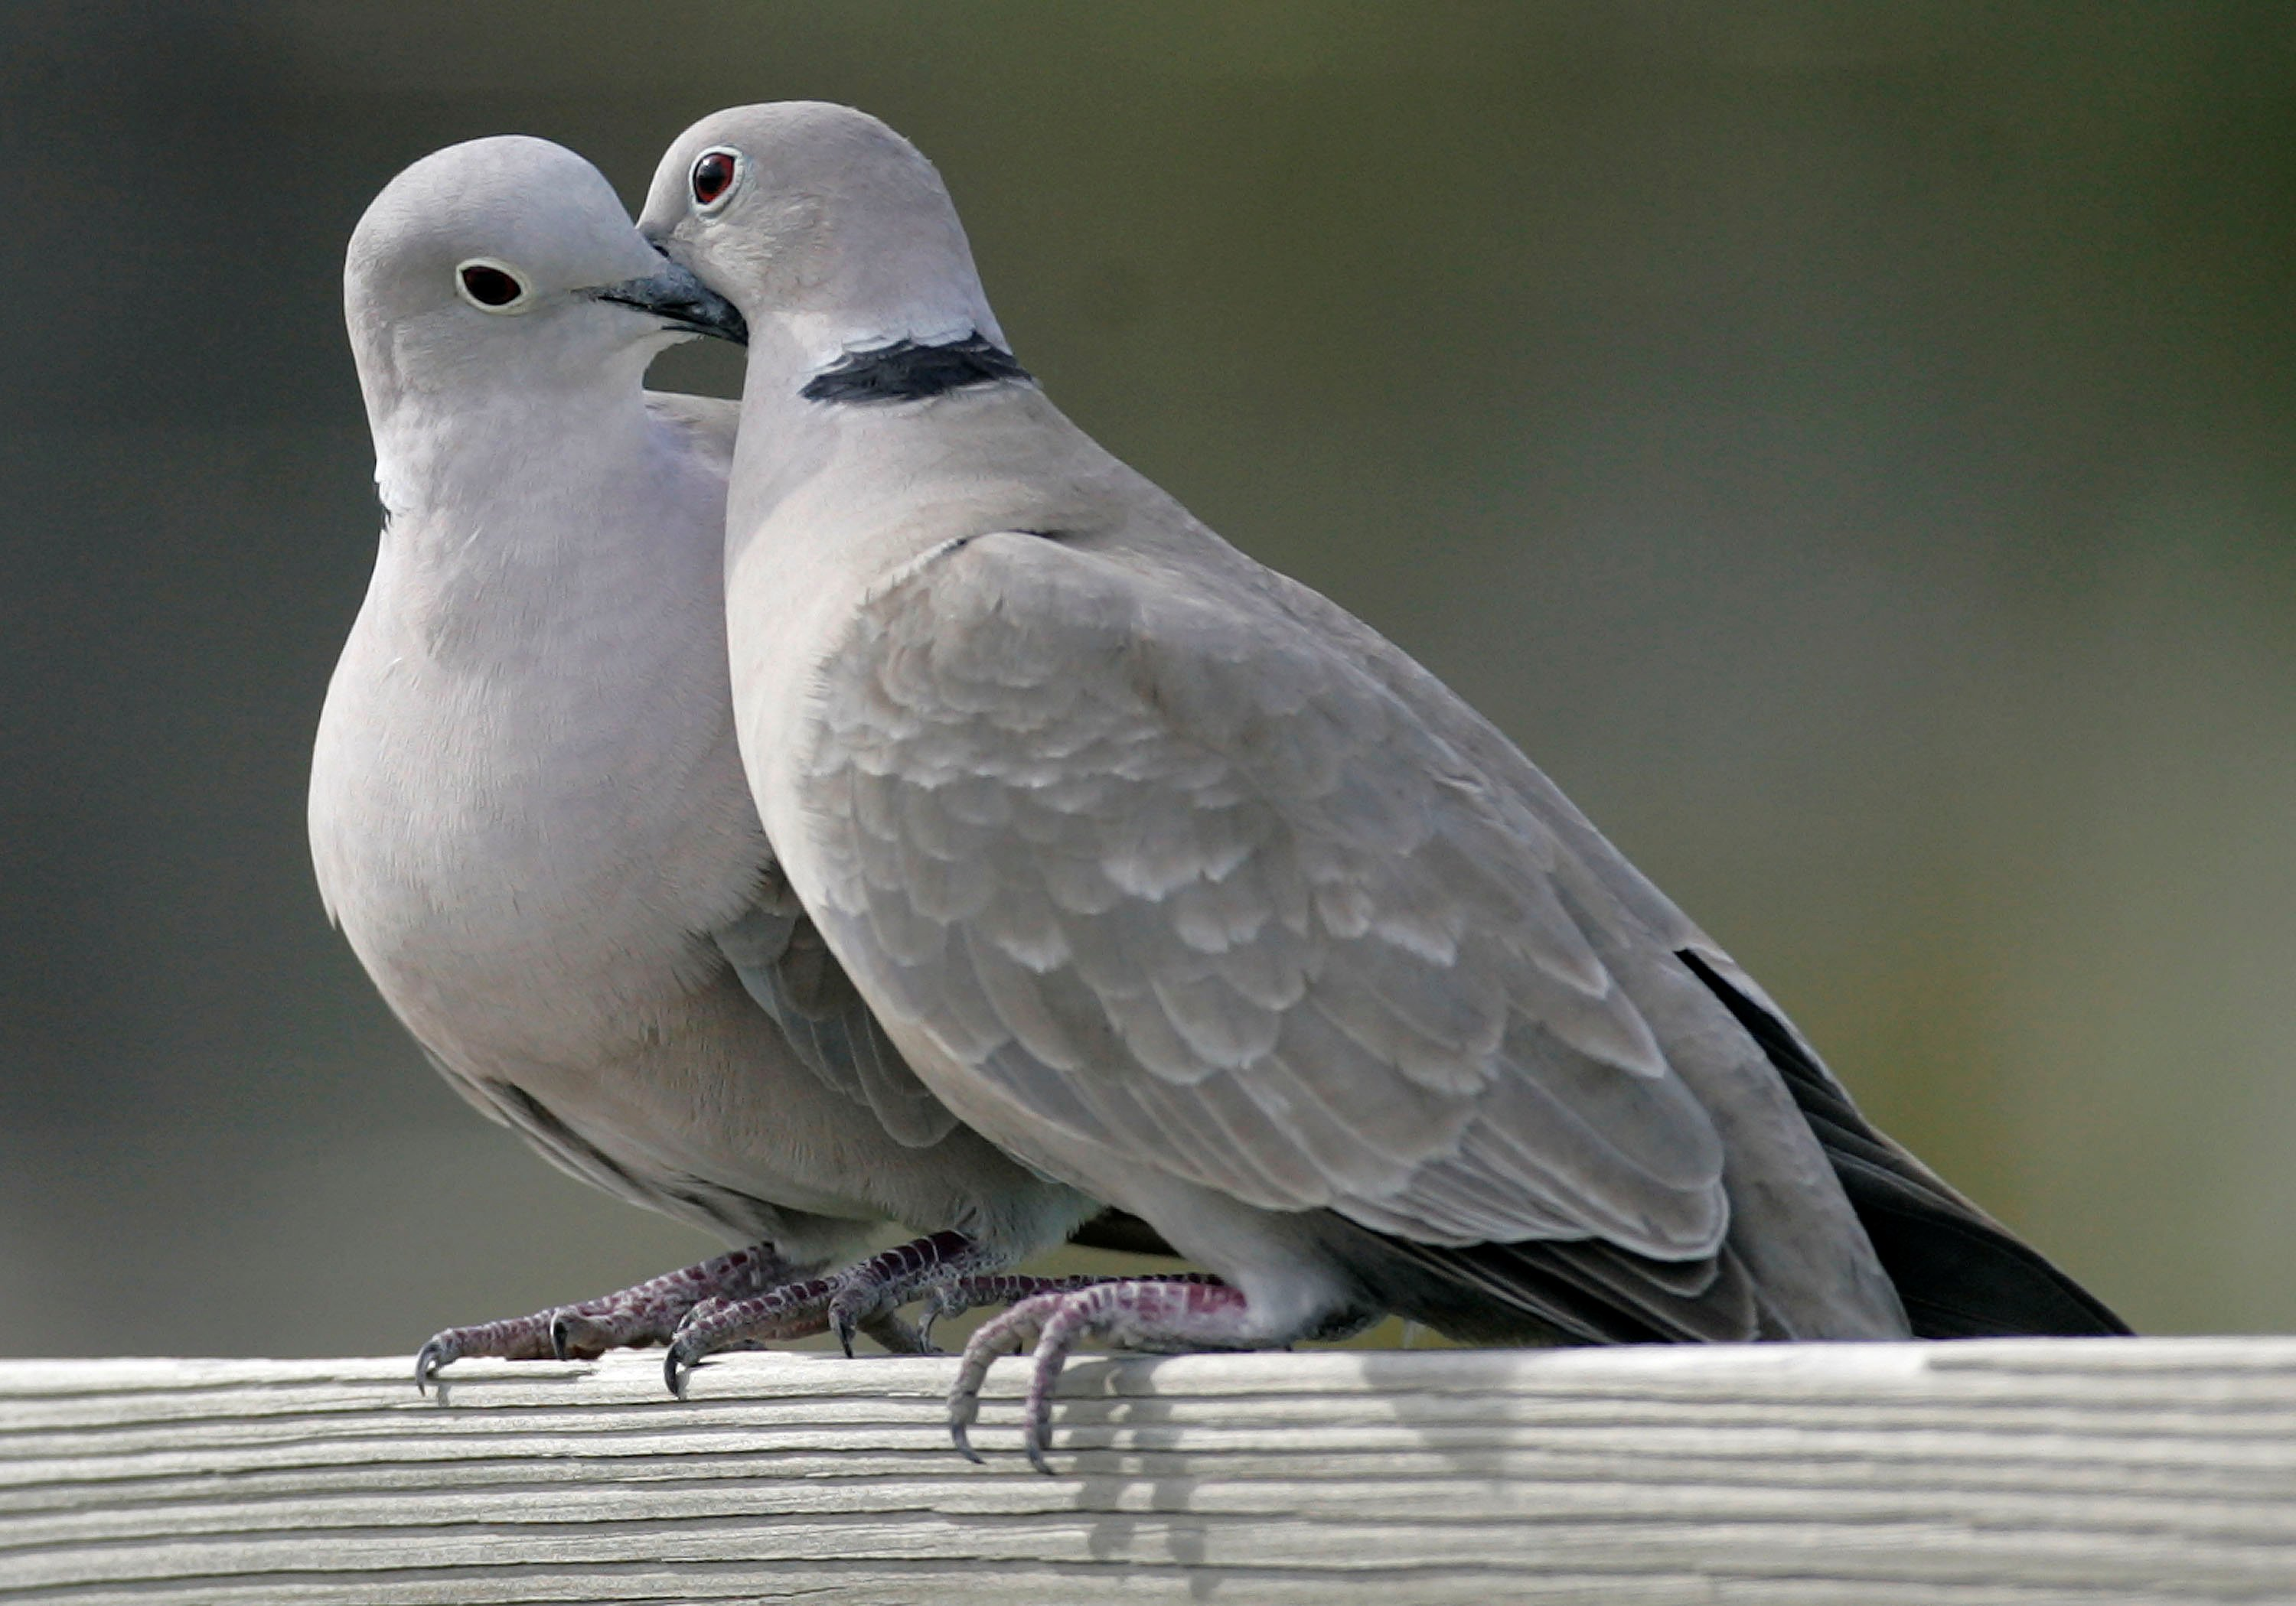 This photo shows two turtle doves in St. George Island, Fla. on Feb. 12, 2009.